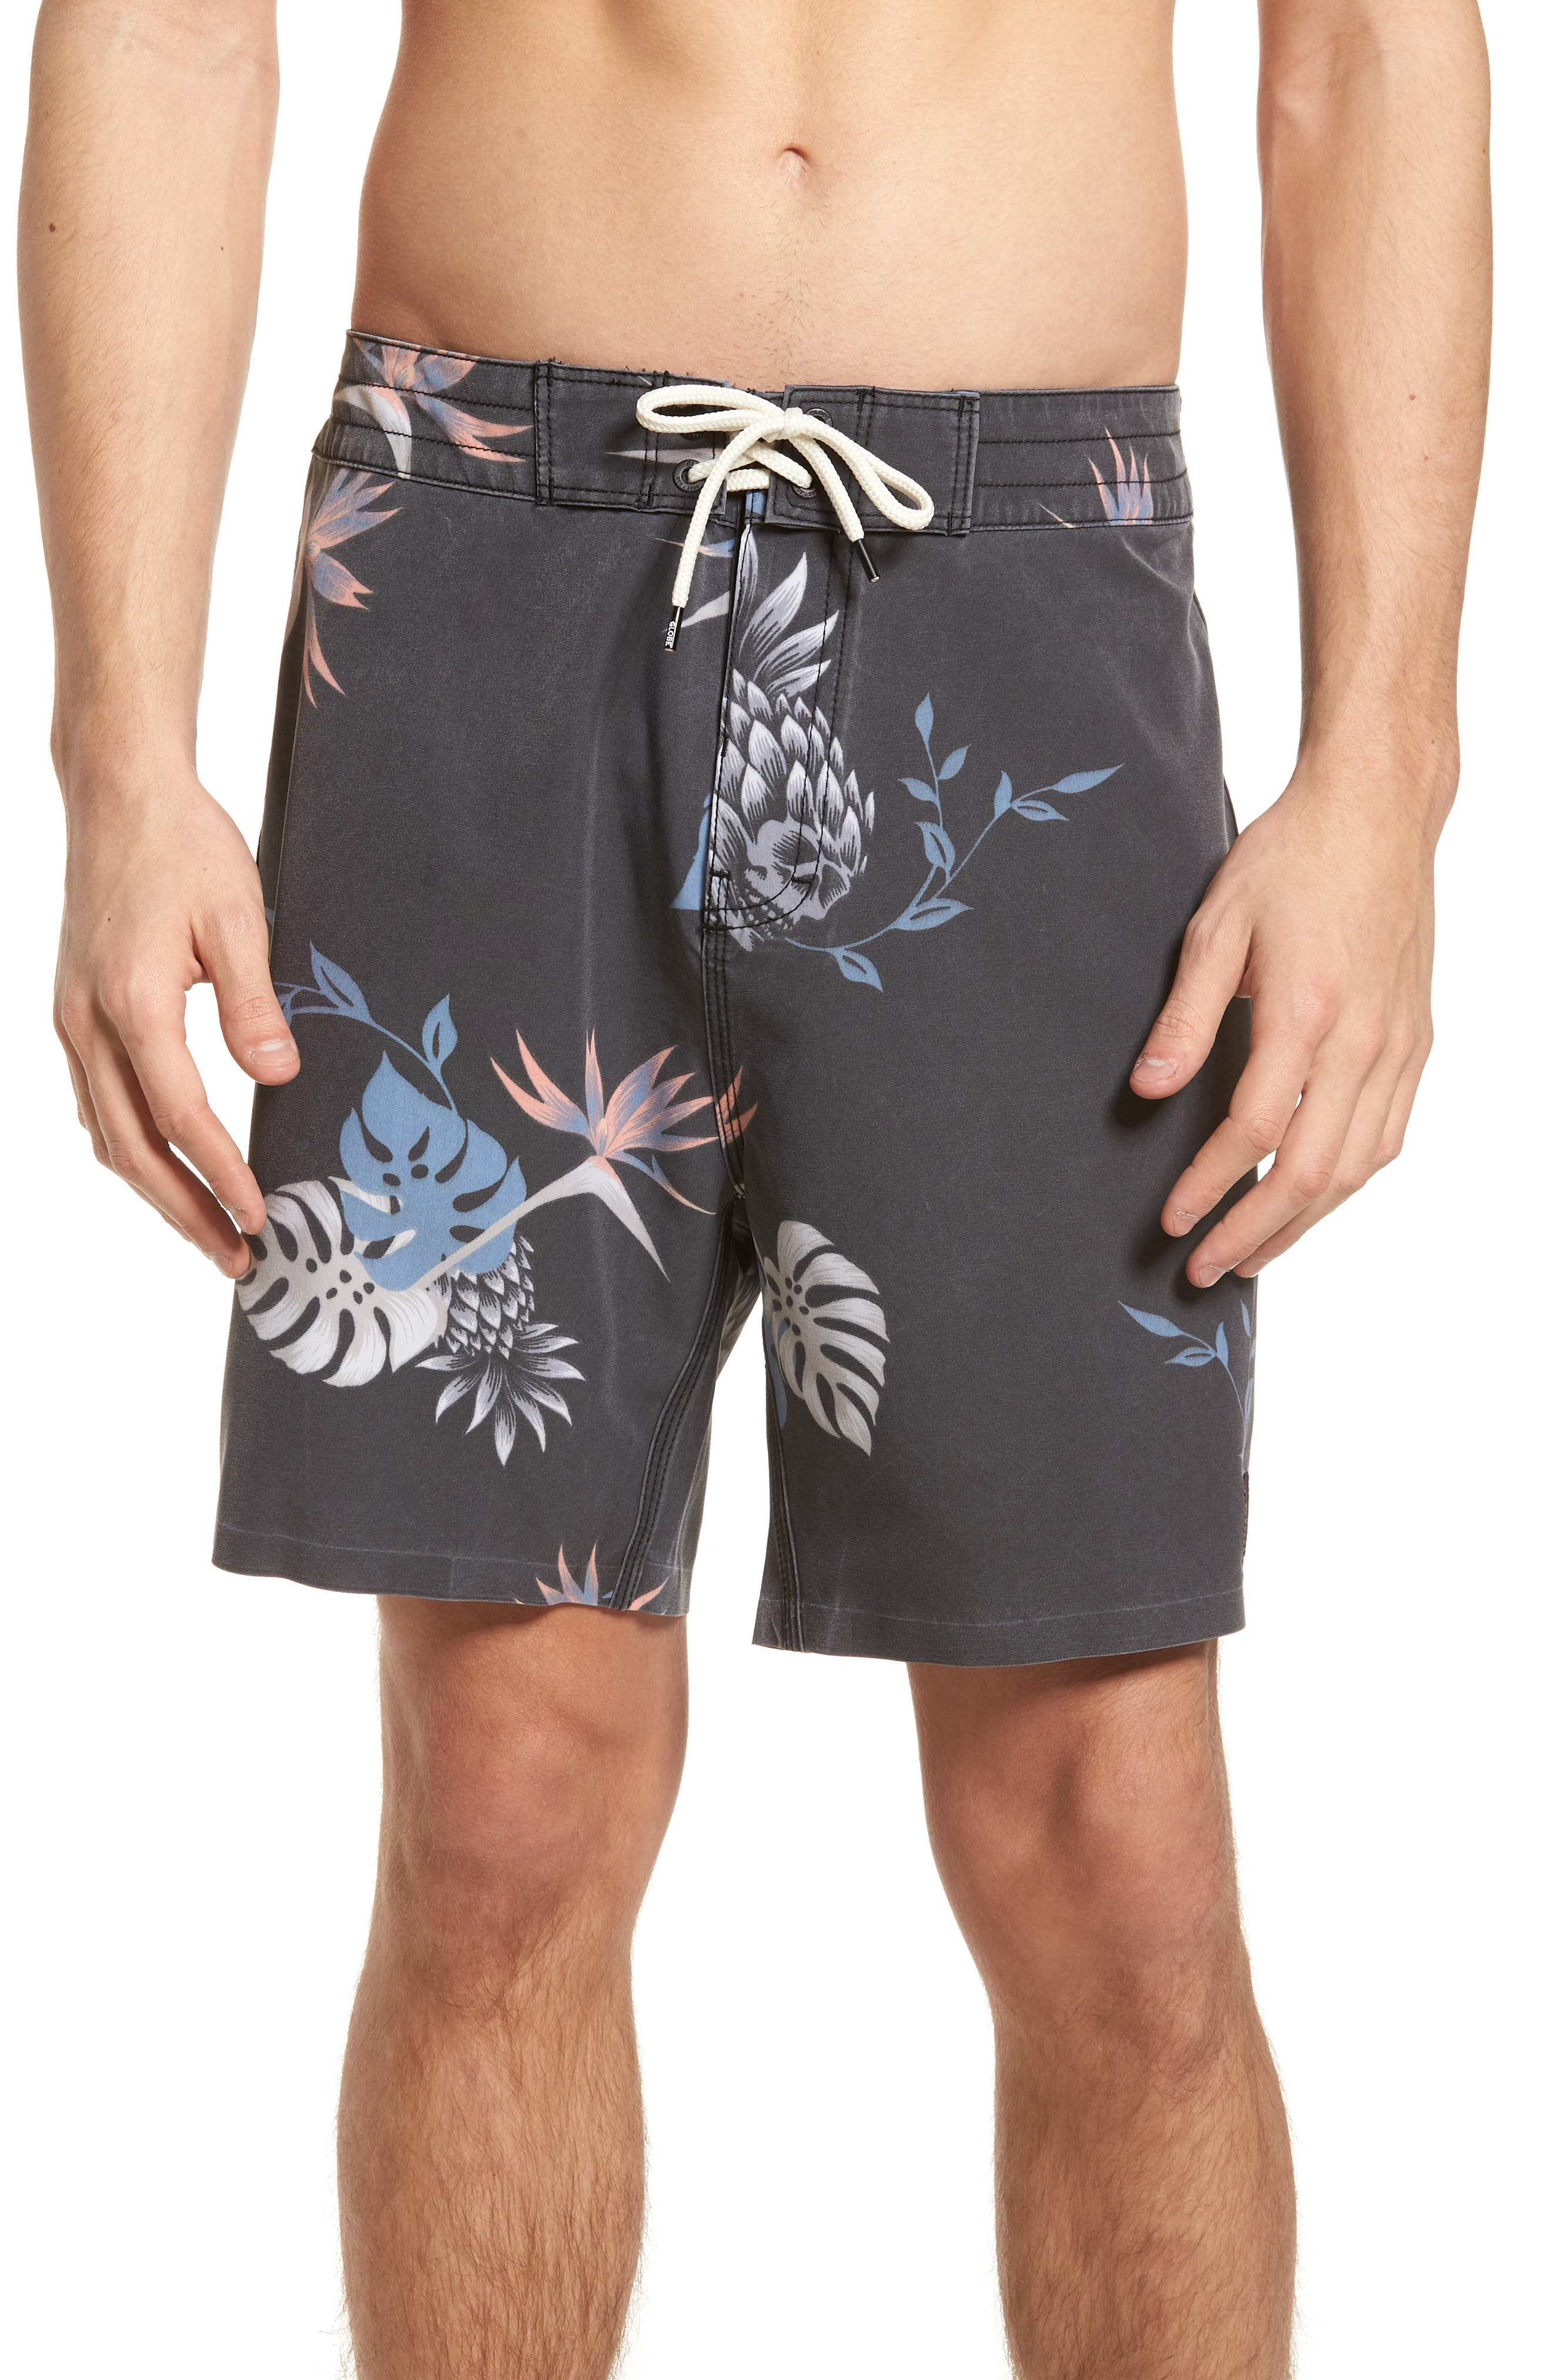 Shangri-La 3.0 Board Shorts,                         Main,                         color, Granite